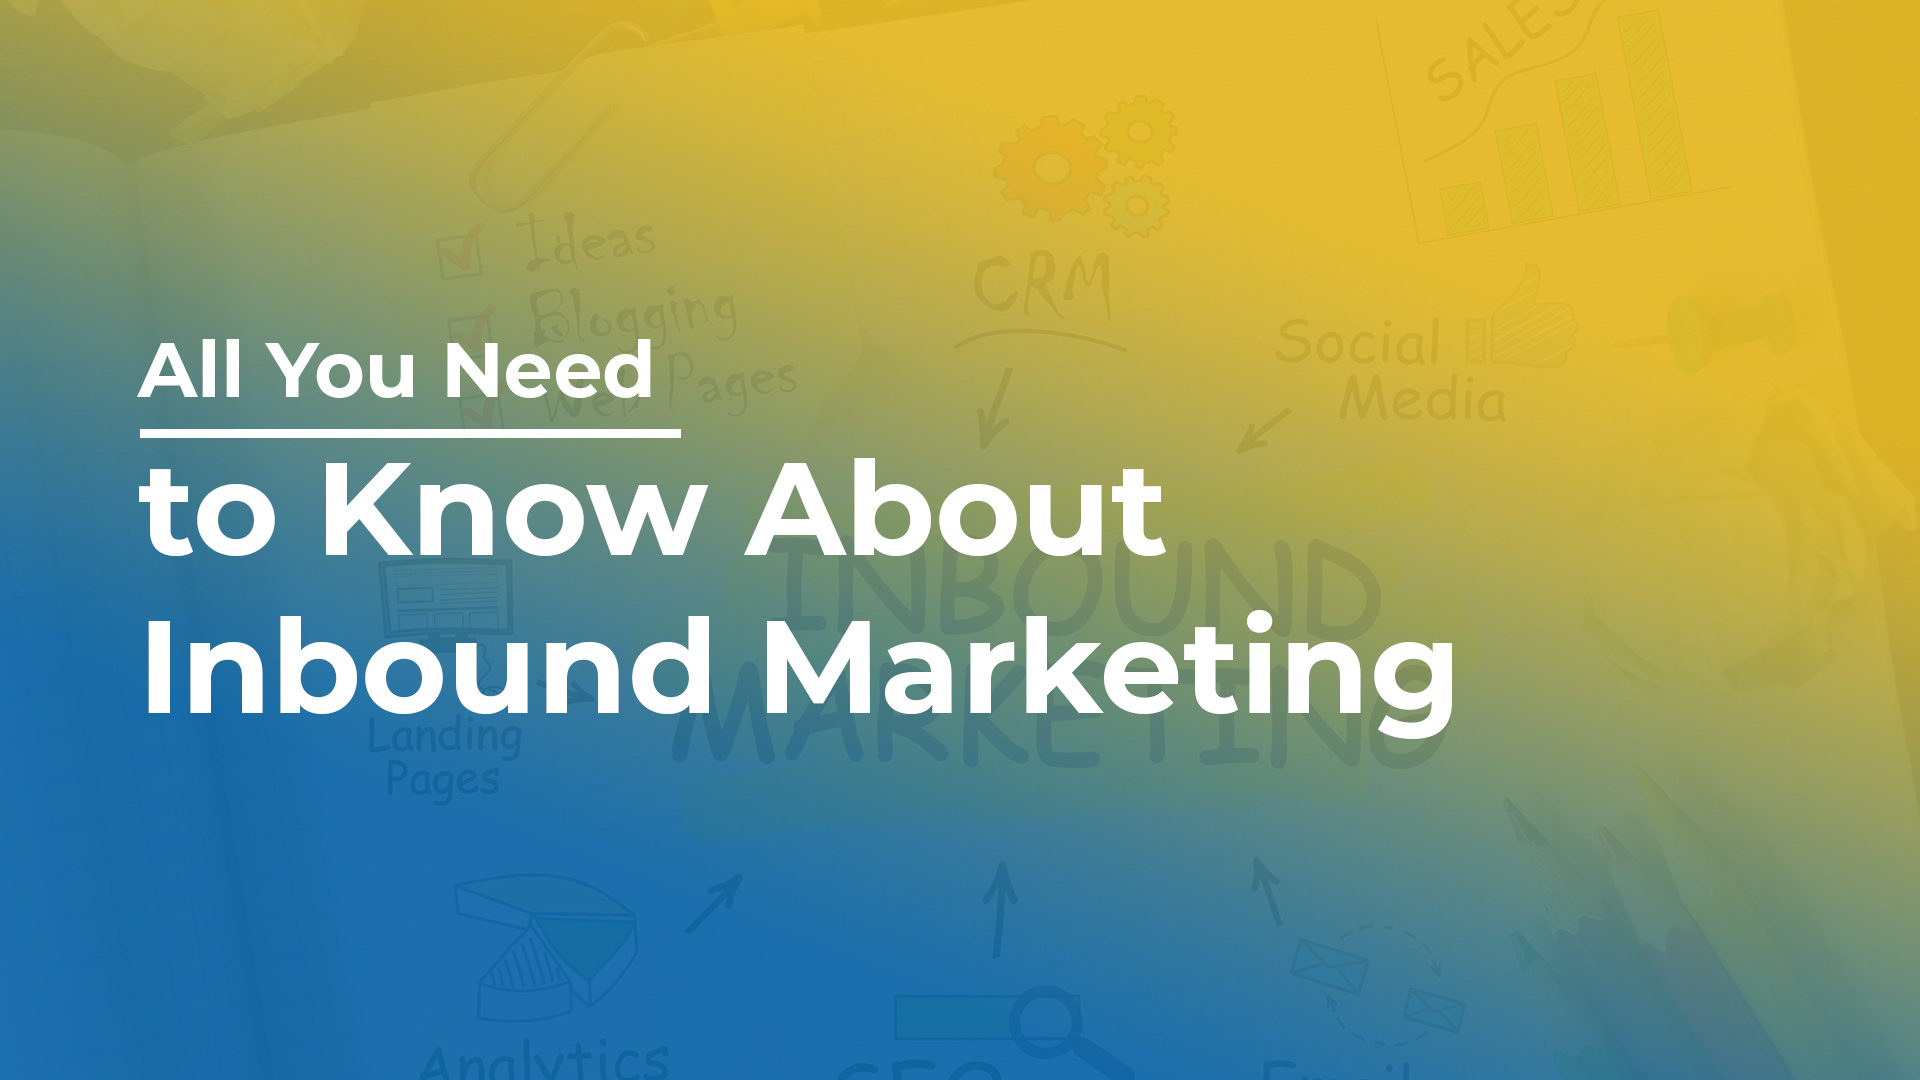 All you Need to Know About Inbound Marketing